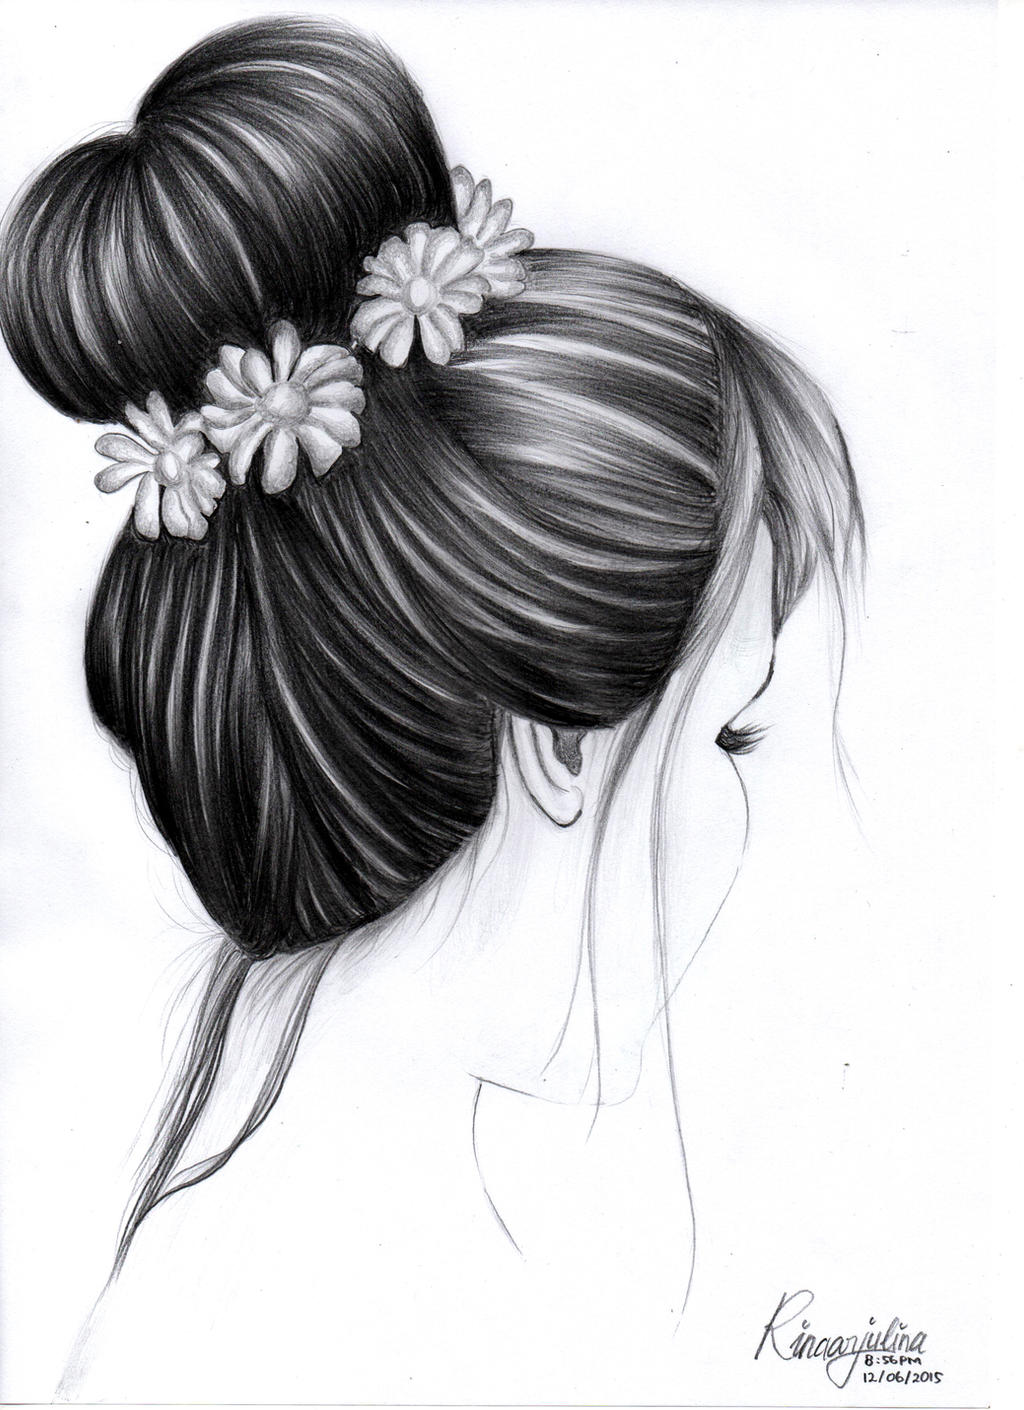 How To Draw Hair Sketch